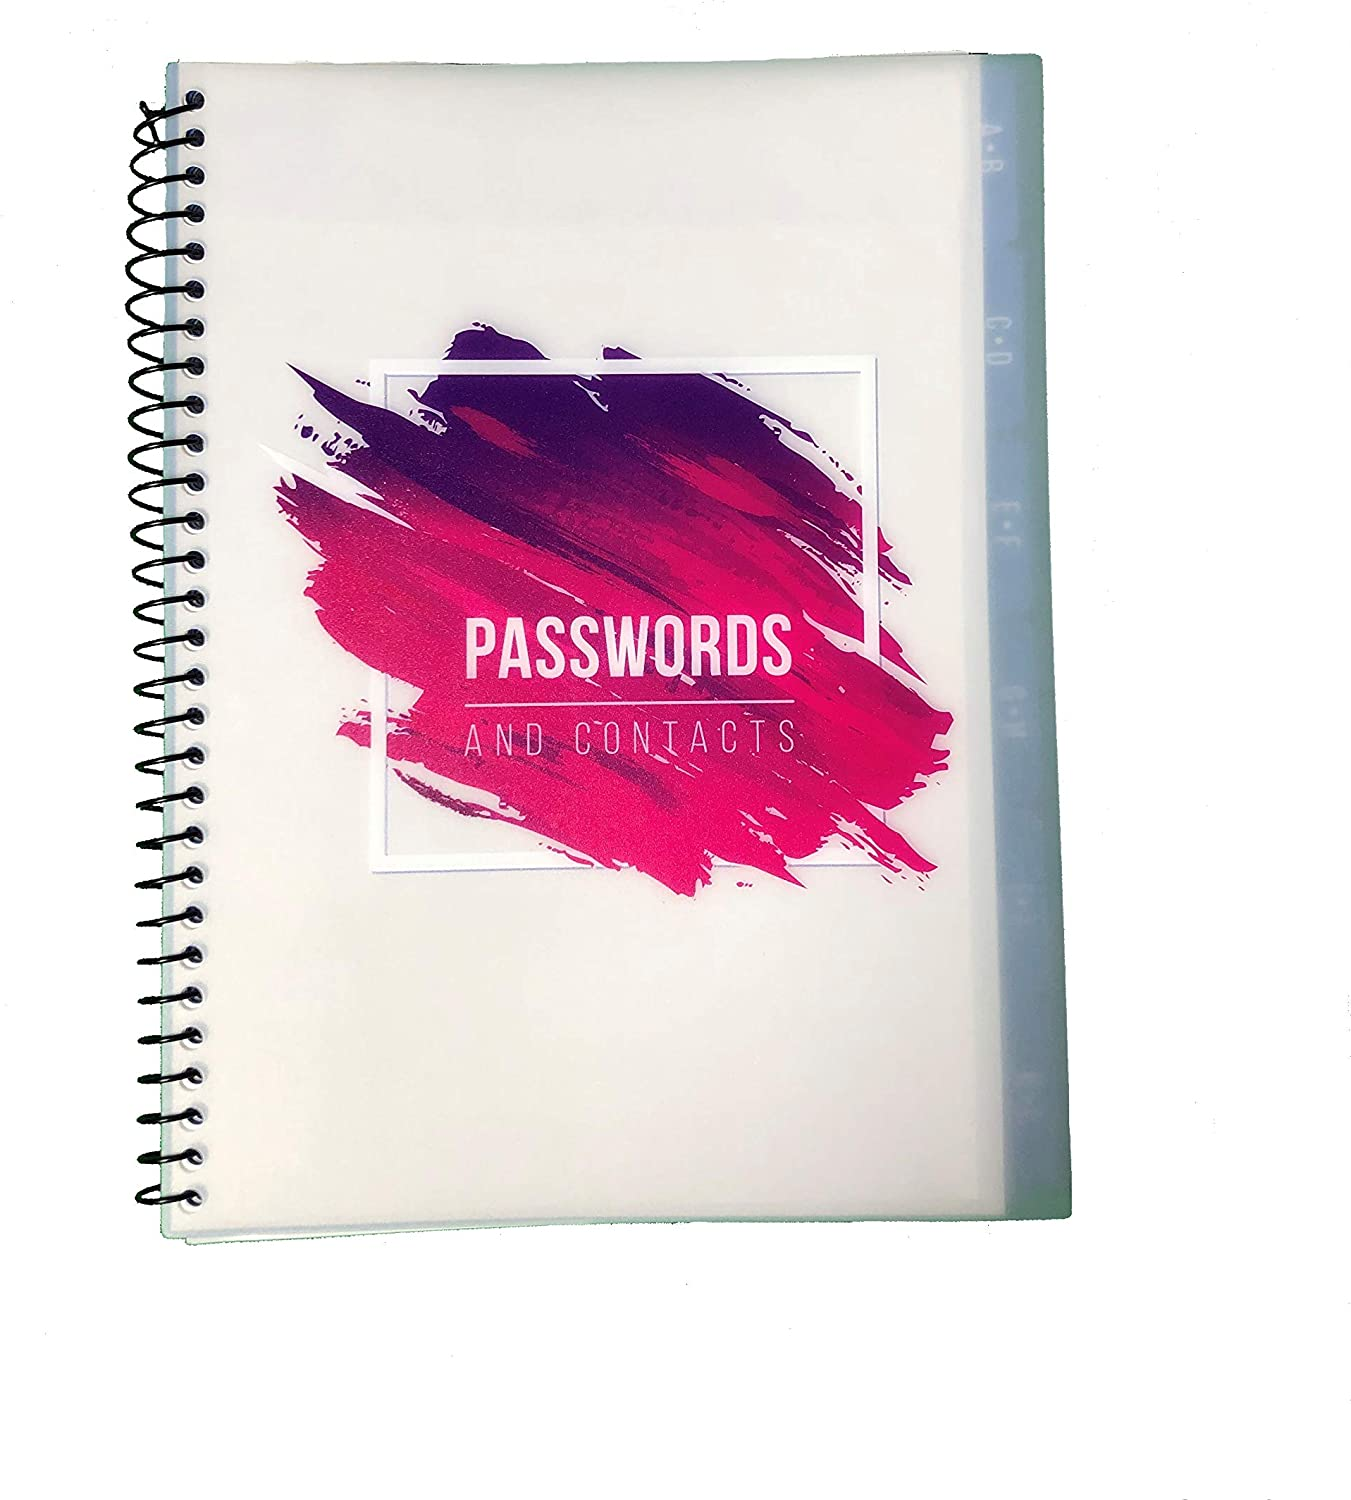 """Pink Password Book Keeper, Alphabetical Tabs, Spiral Bound, Tear-Out Sheets, Journal Organizer Includes Website, Address, Username, Password - 10"""" x 7.6"""" by Re-Focus The Creative Office"""